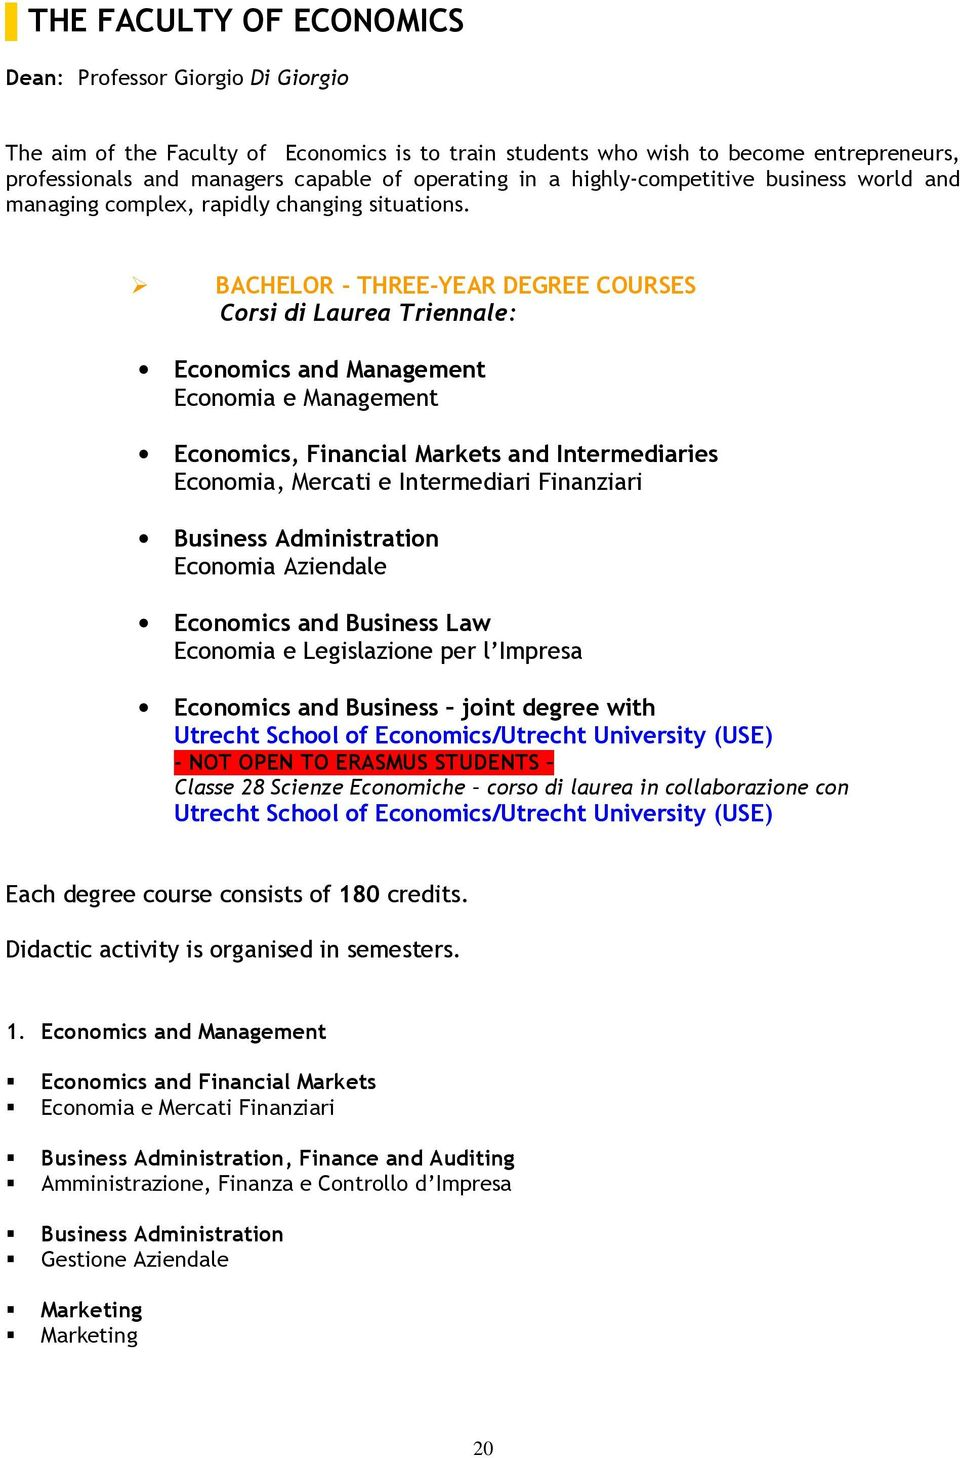 BACHELOR - THREE-YEAR DEGREE COURSES Corsi di Laurea Triennale: Economics and Management Economia e Management Economics, Financial Markets and Intermediaries Economia, Mercati e Intermediari